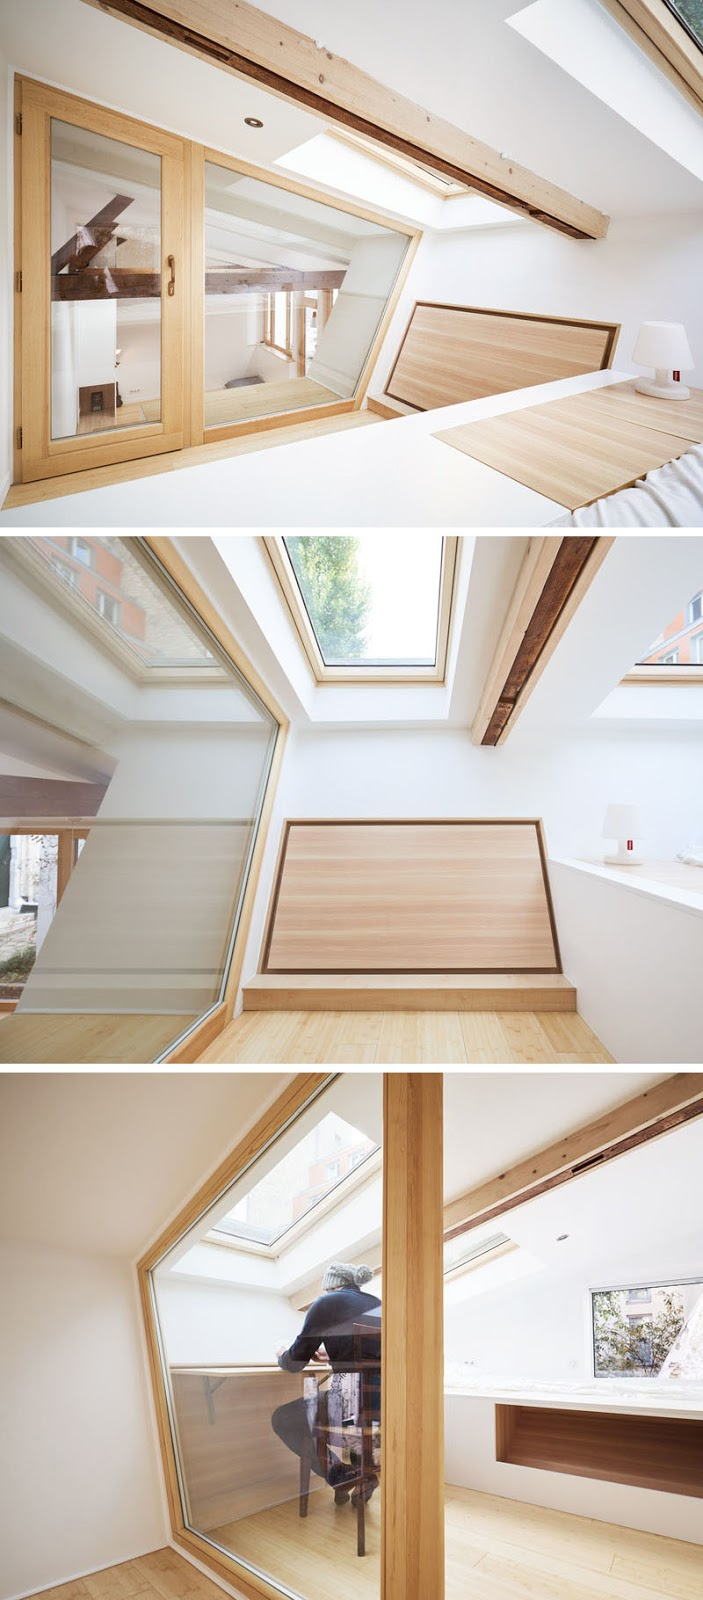 lofted-work-space-with-foldout-desk-120318-1250-11 This 1970s Studio Was Transformed Into A Bright And Open Small Home (Before & After) Interior